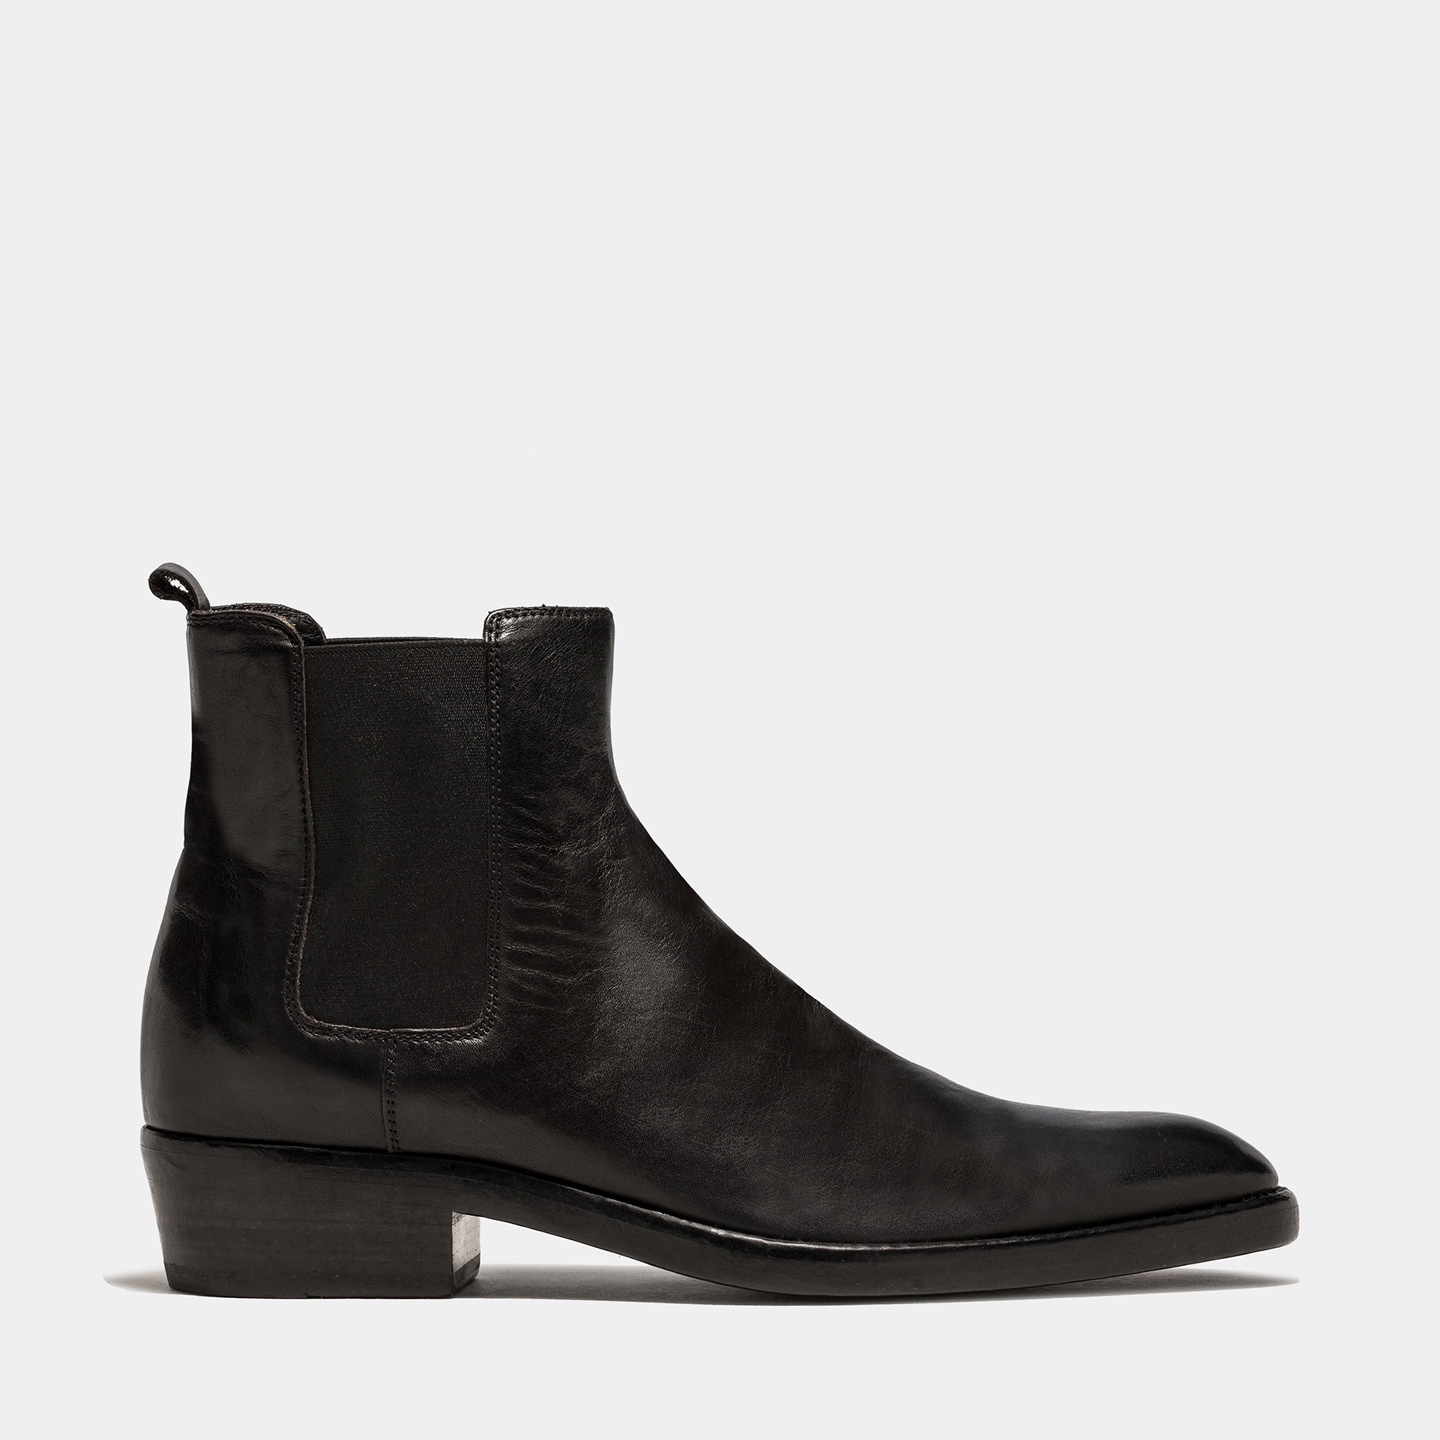 BUTTERO: QUENTIN BOOTS IN BLACK LEATHER